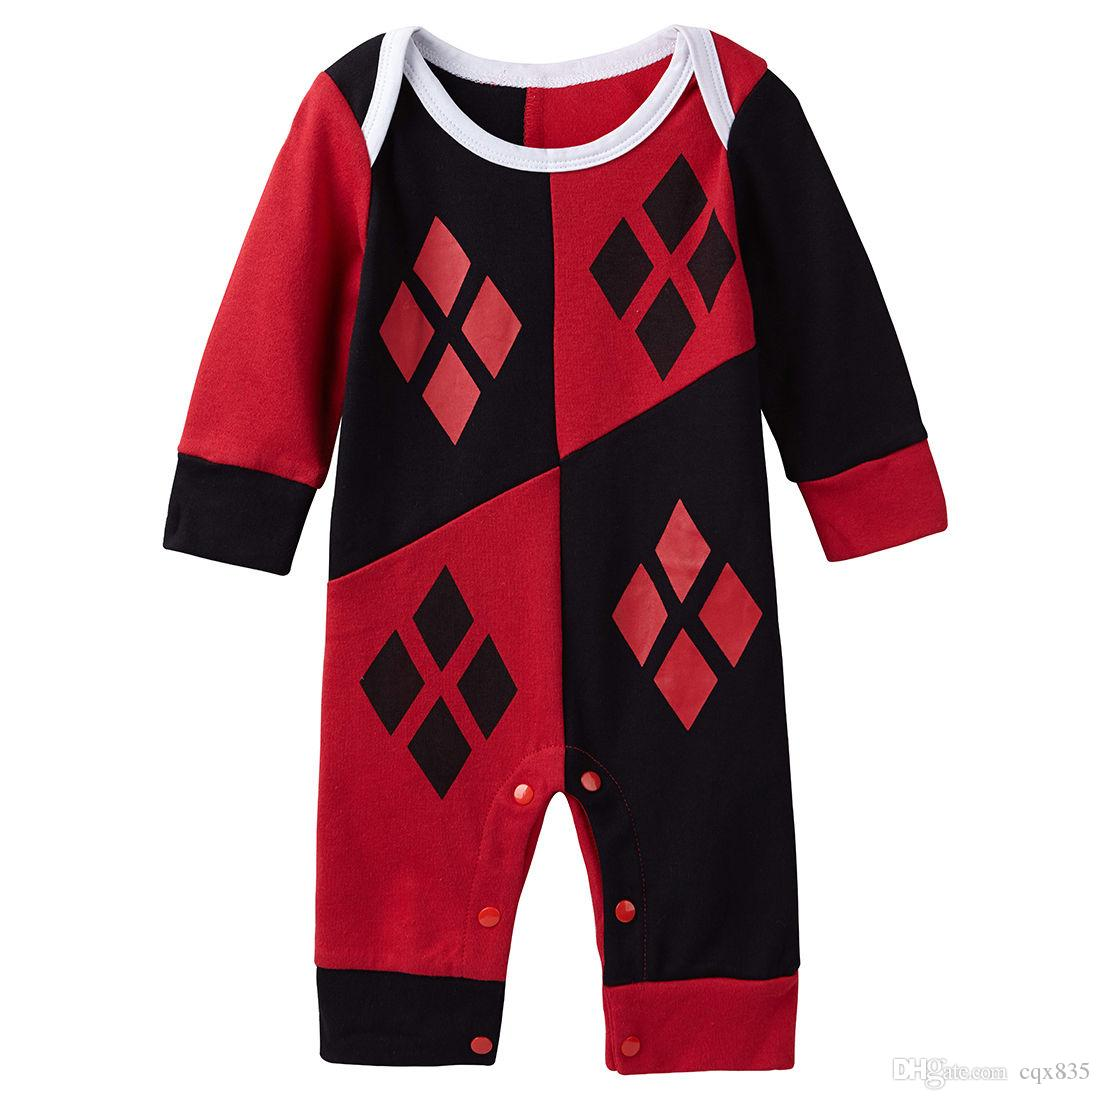 Harley Quinn Baby Outfit